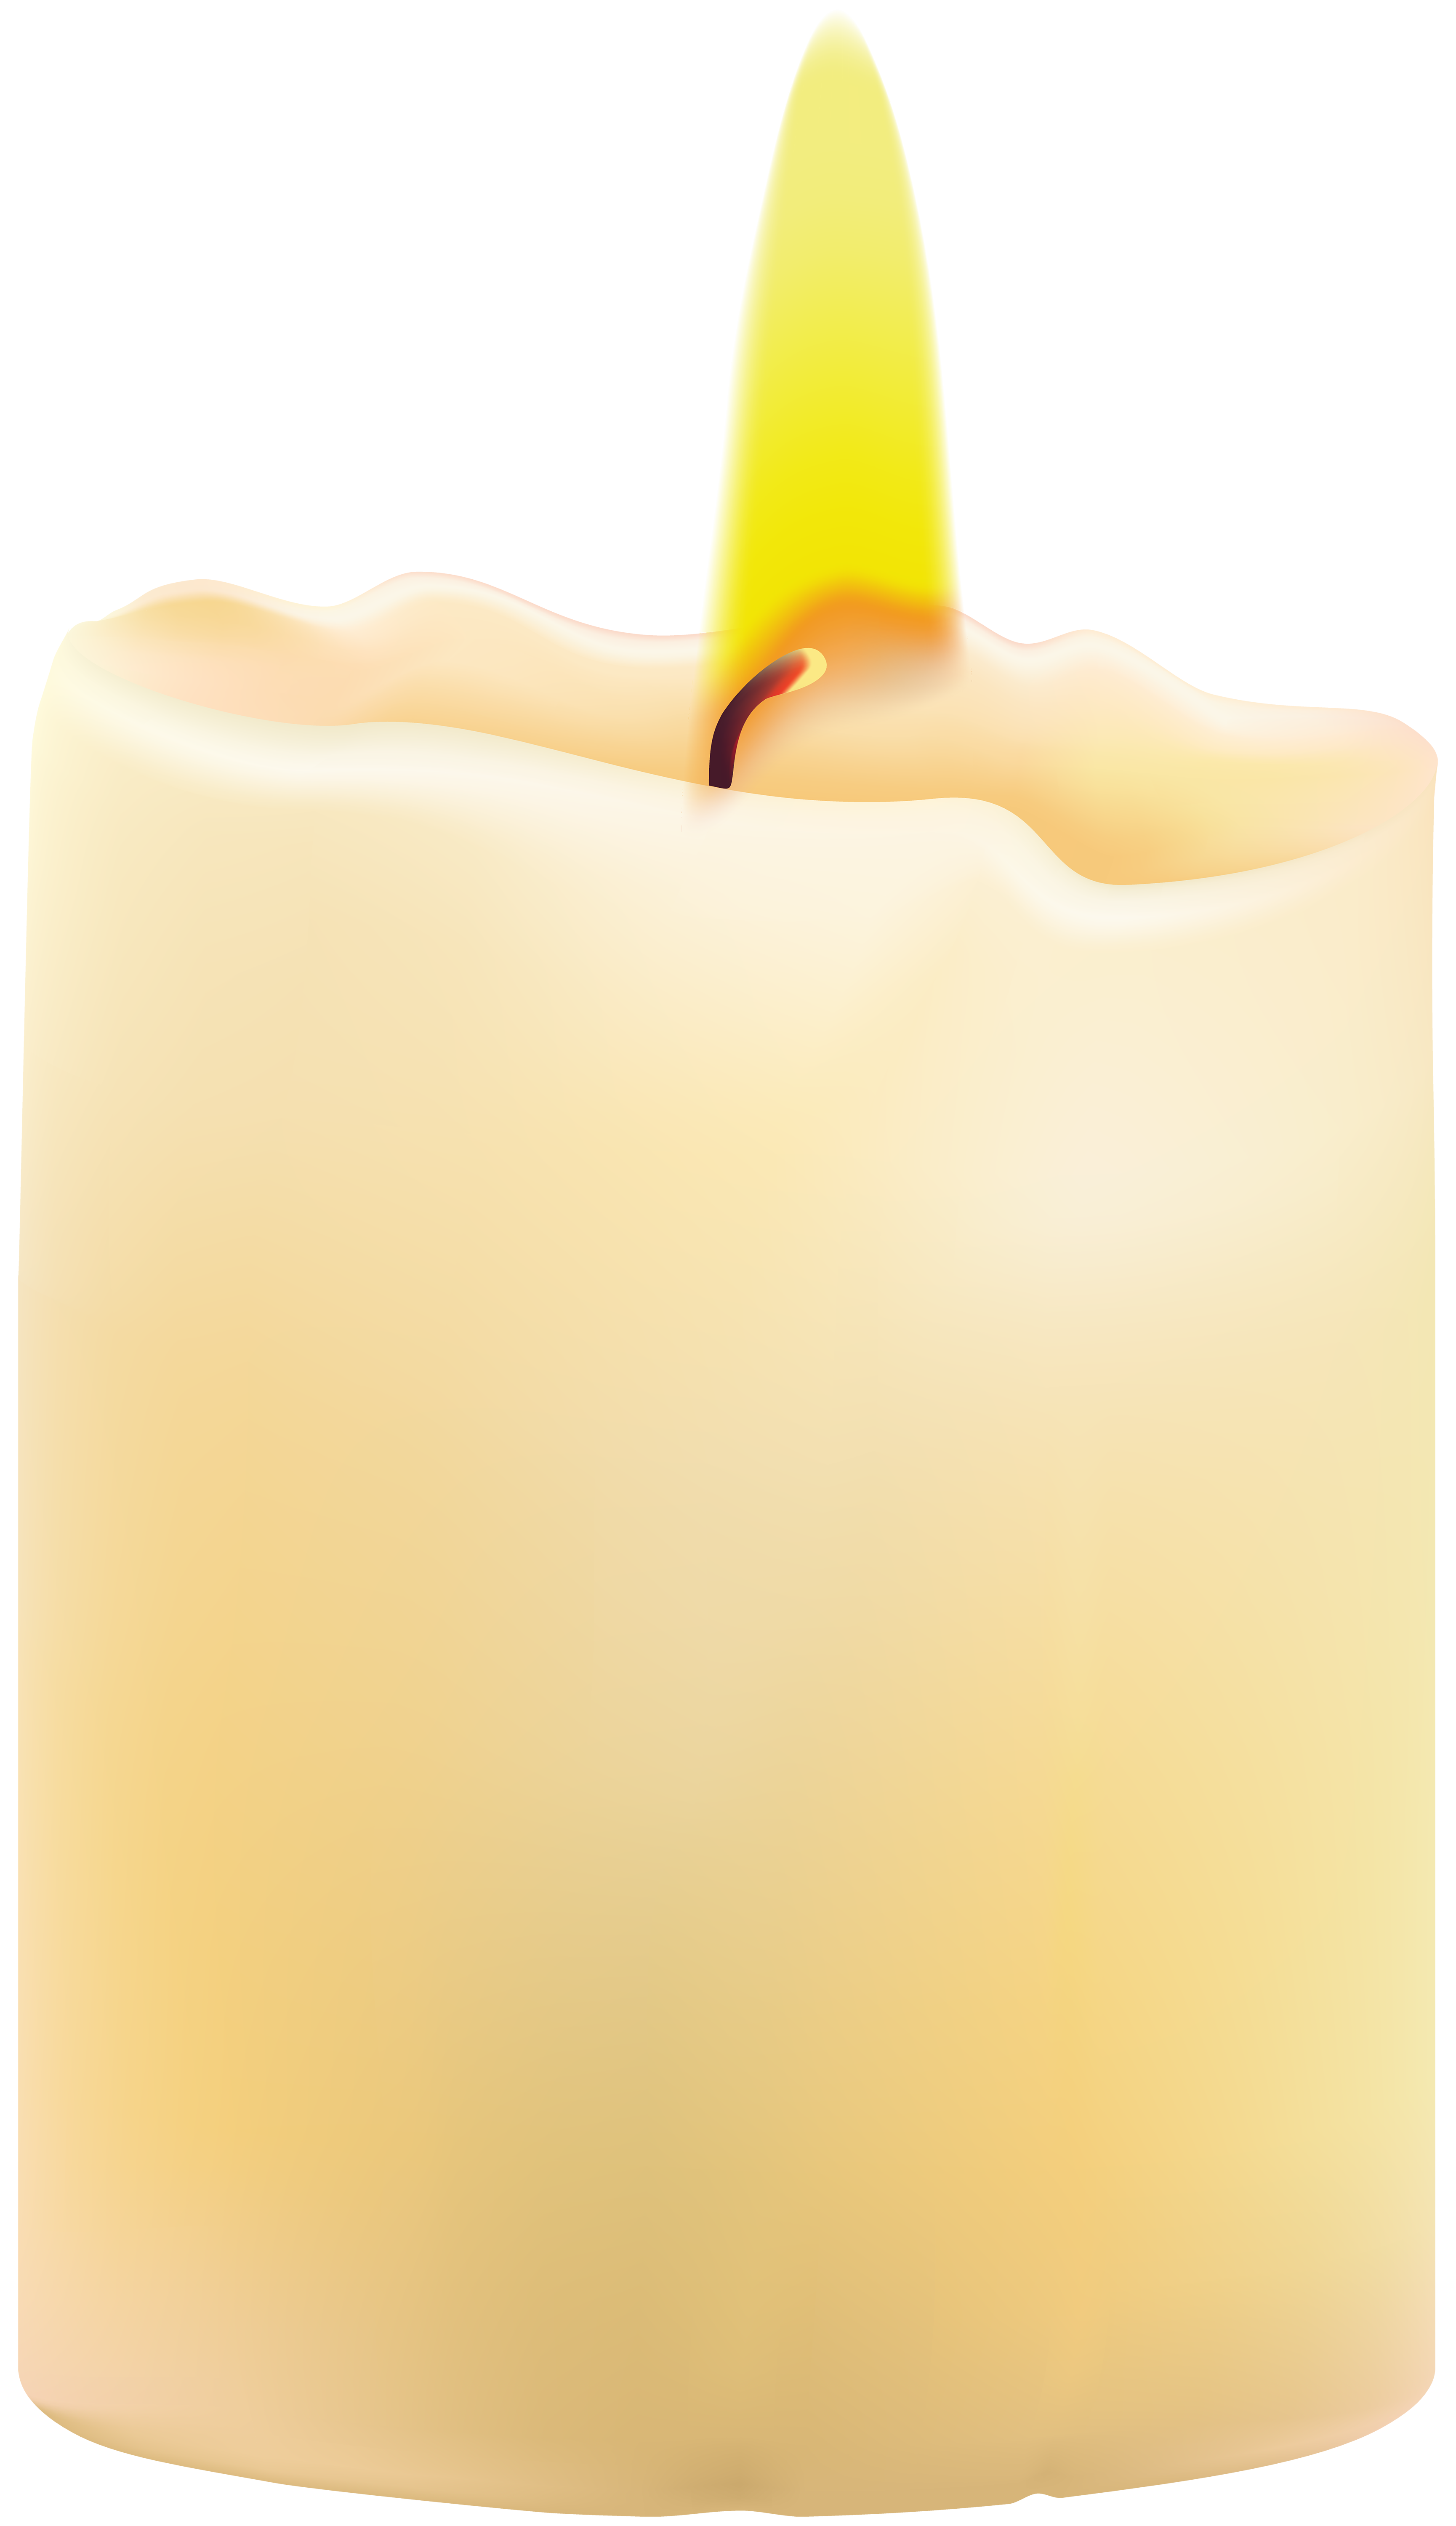 Png clip art best. Clipart book candle